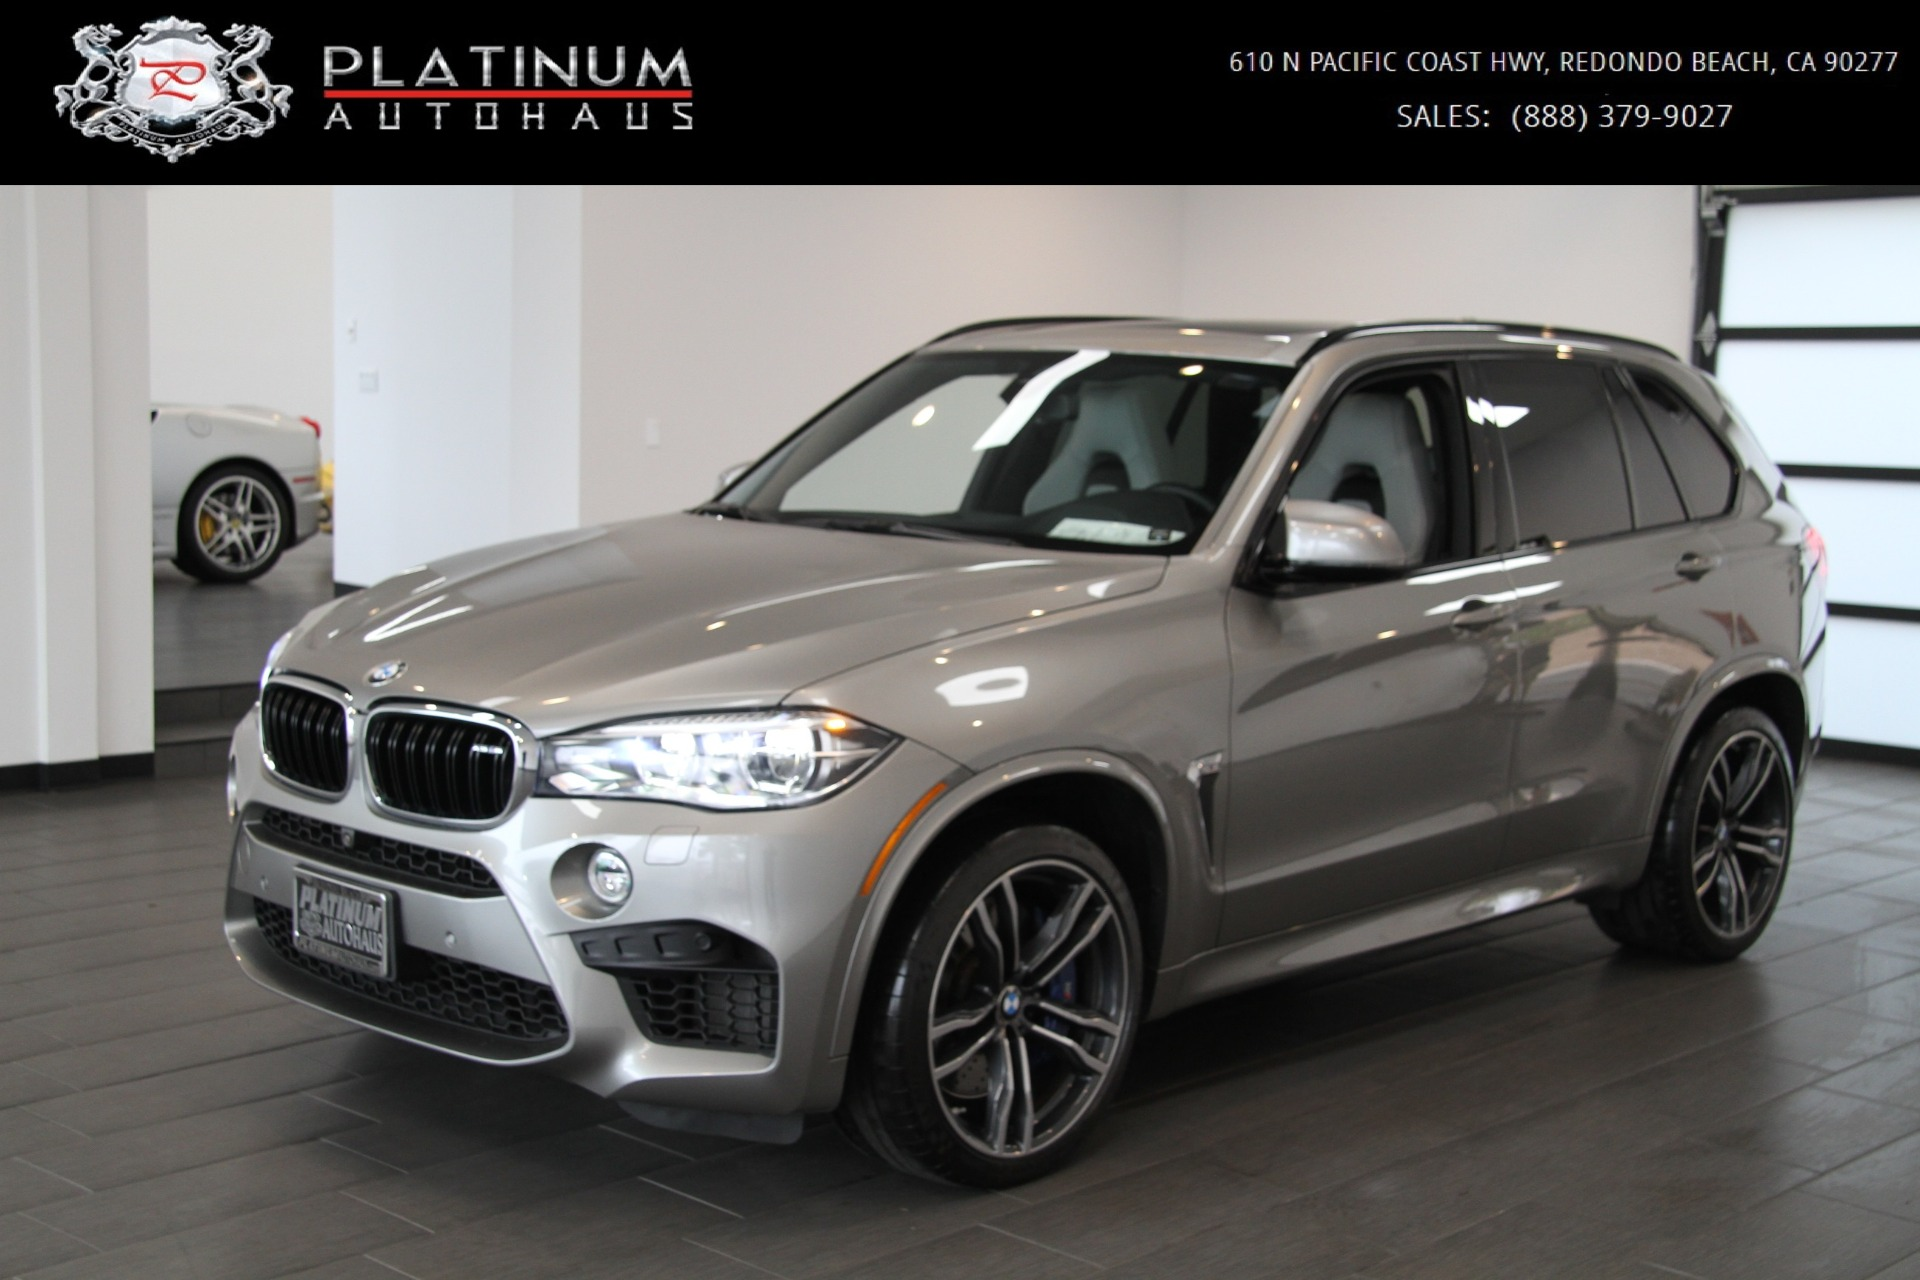 2016 bmw x5 m stock r79355 for sale near redondo beach - Used exterior doors for sale near me ...